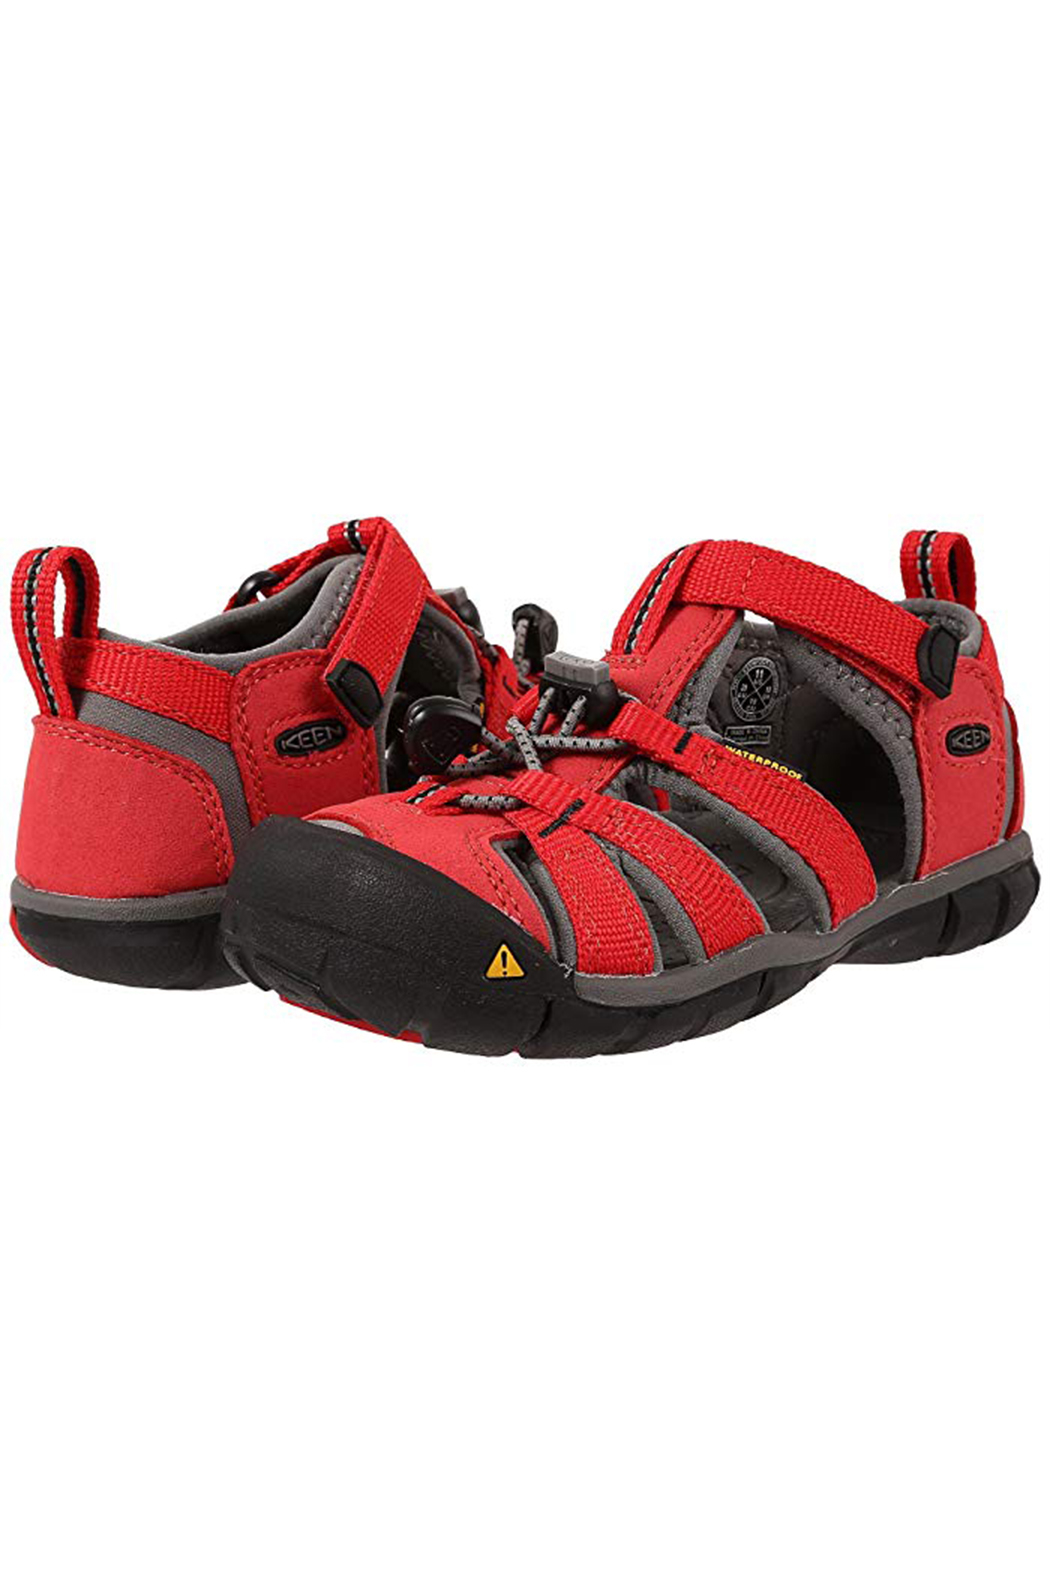 Keen Seacamp II CNX Sandal Children/Youth - Front Cropped Image